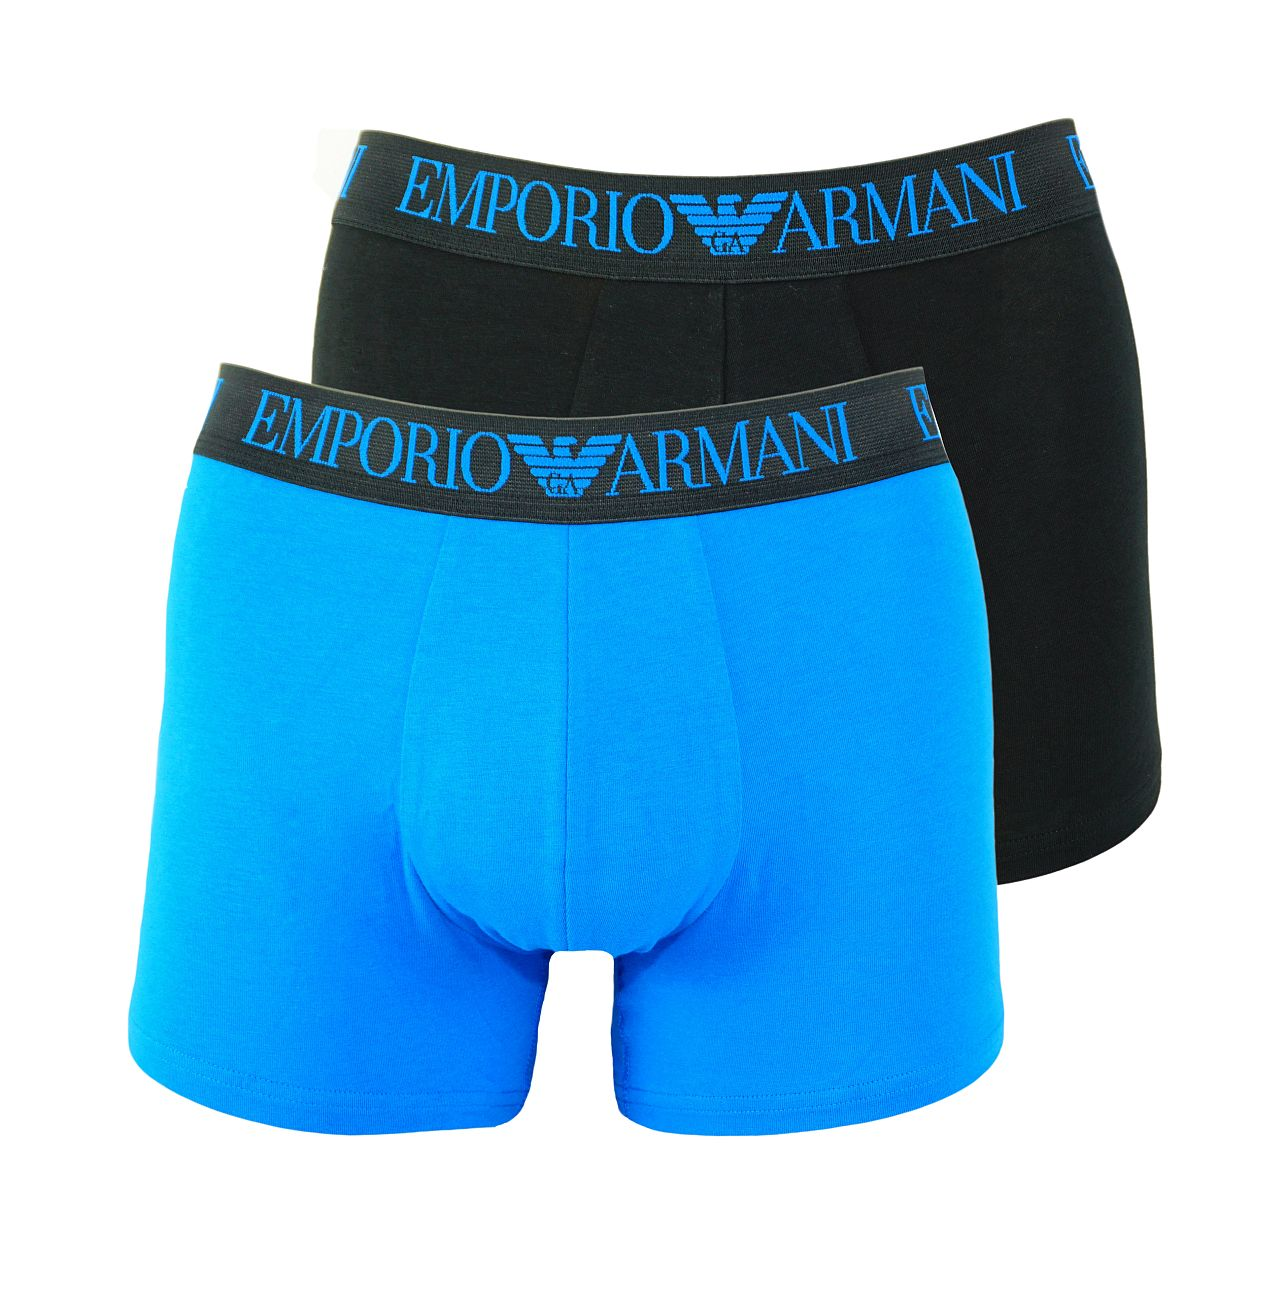 Emporio Armani 2er Pack Trunk Shorts 111769 8P720 03220 NERO/CIELO F18-EAT1